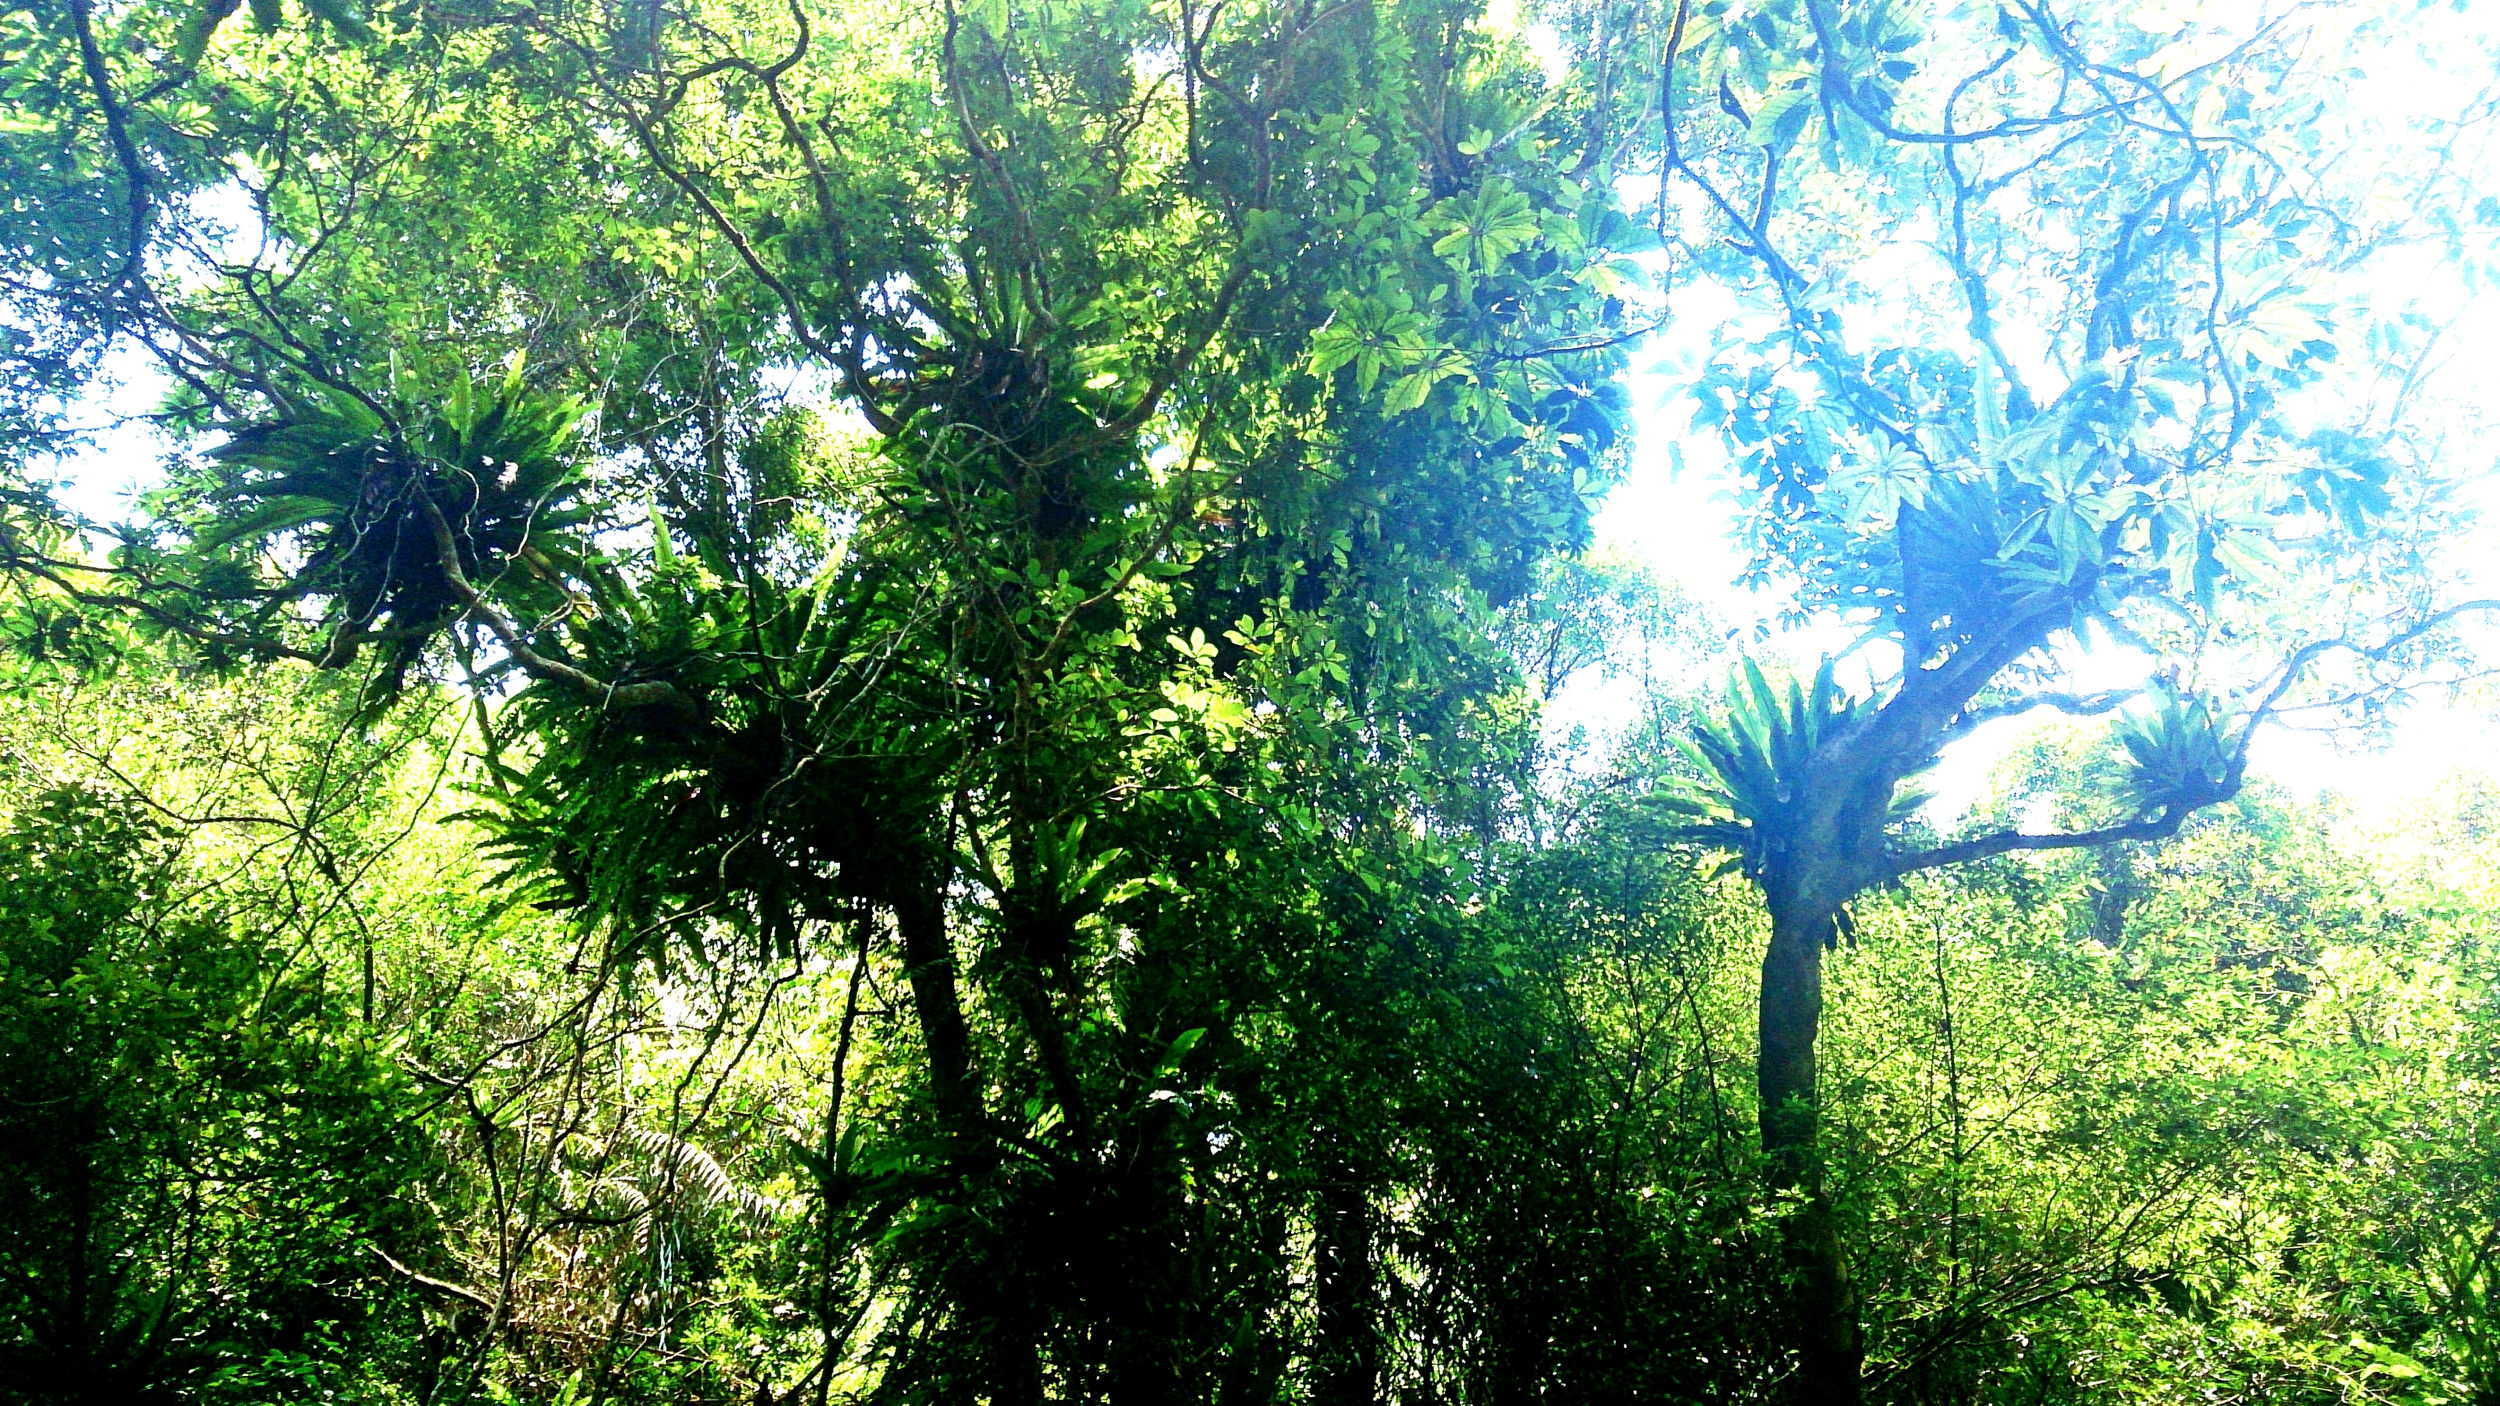 2015: A tree covered in birds-nest ferns.